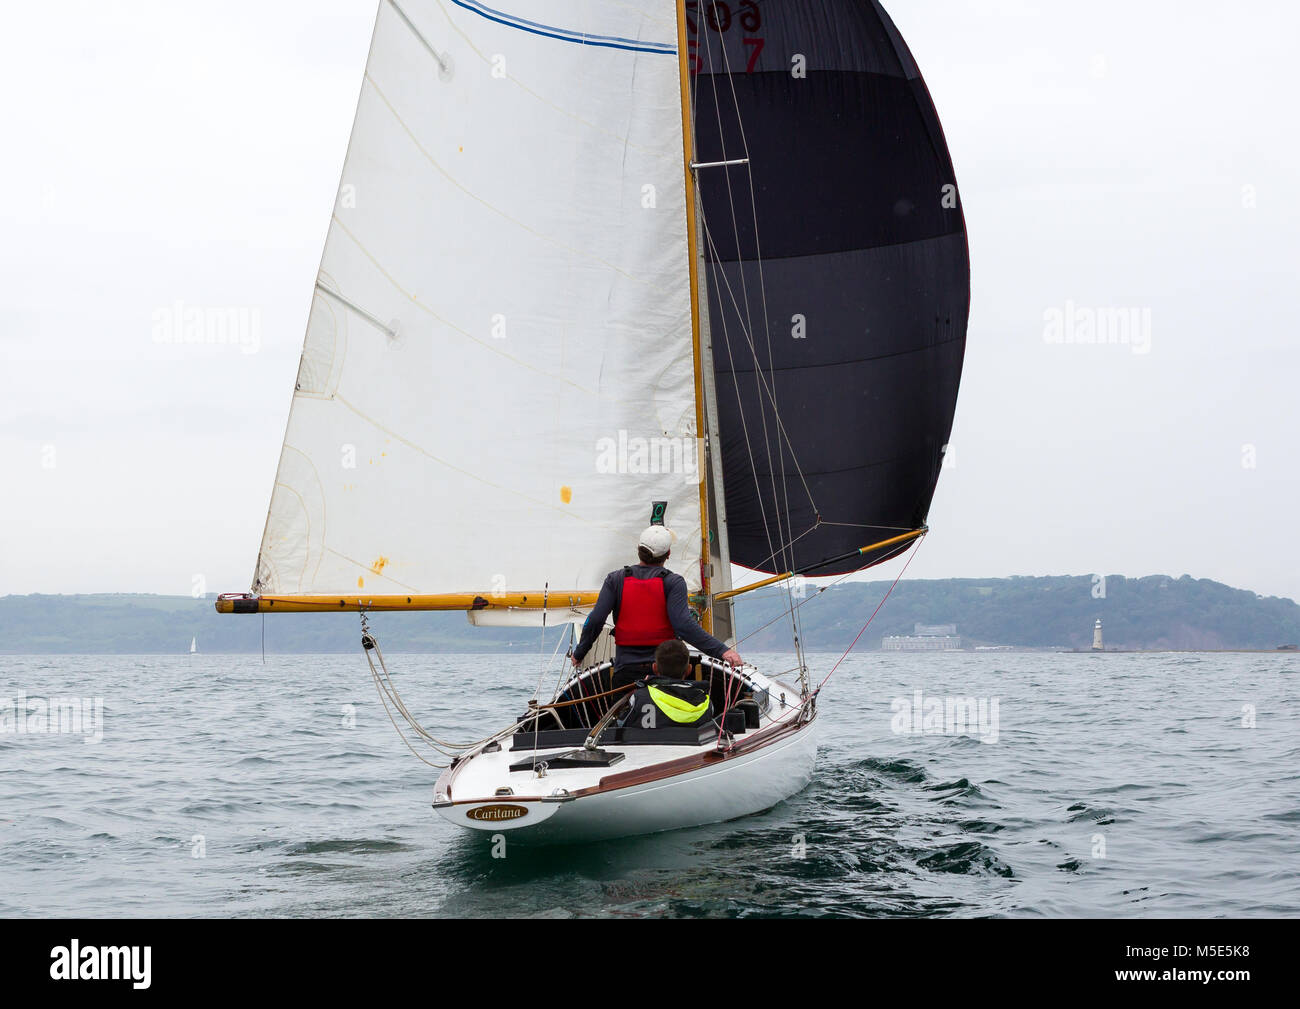 A crew member on the yacht Caritana trims the spinnaker during a classic boat race in Plymouth Sound - Stock Image